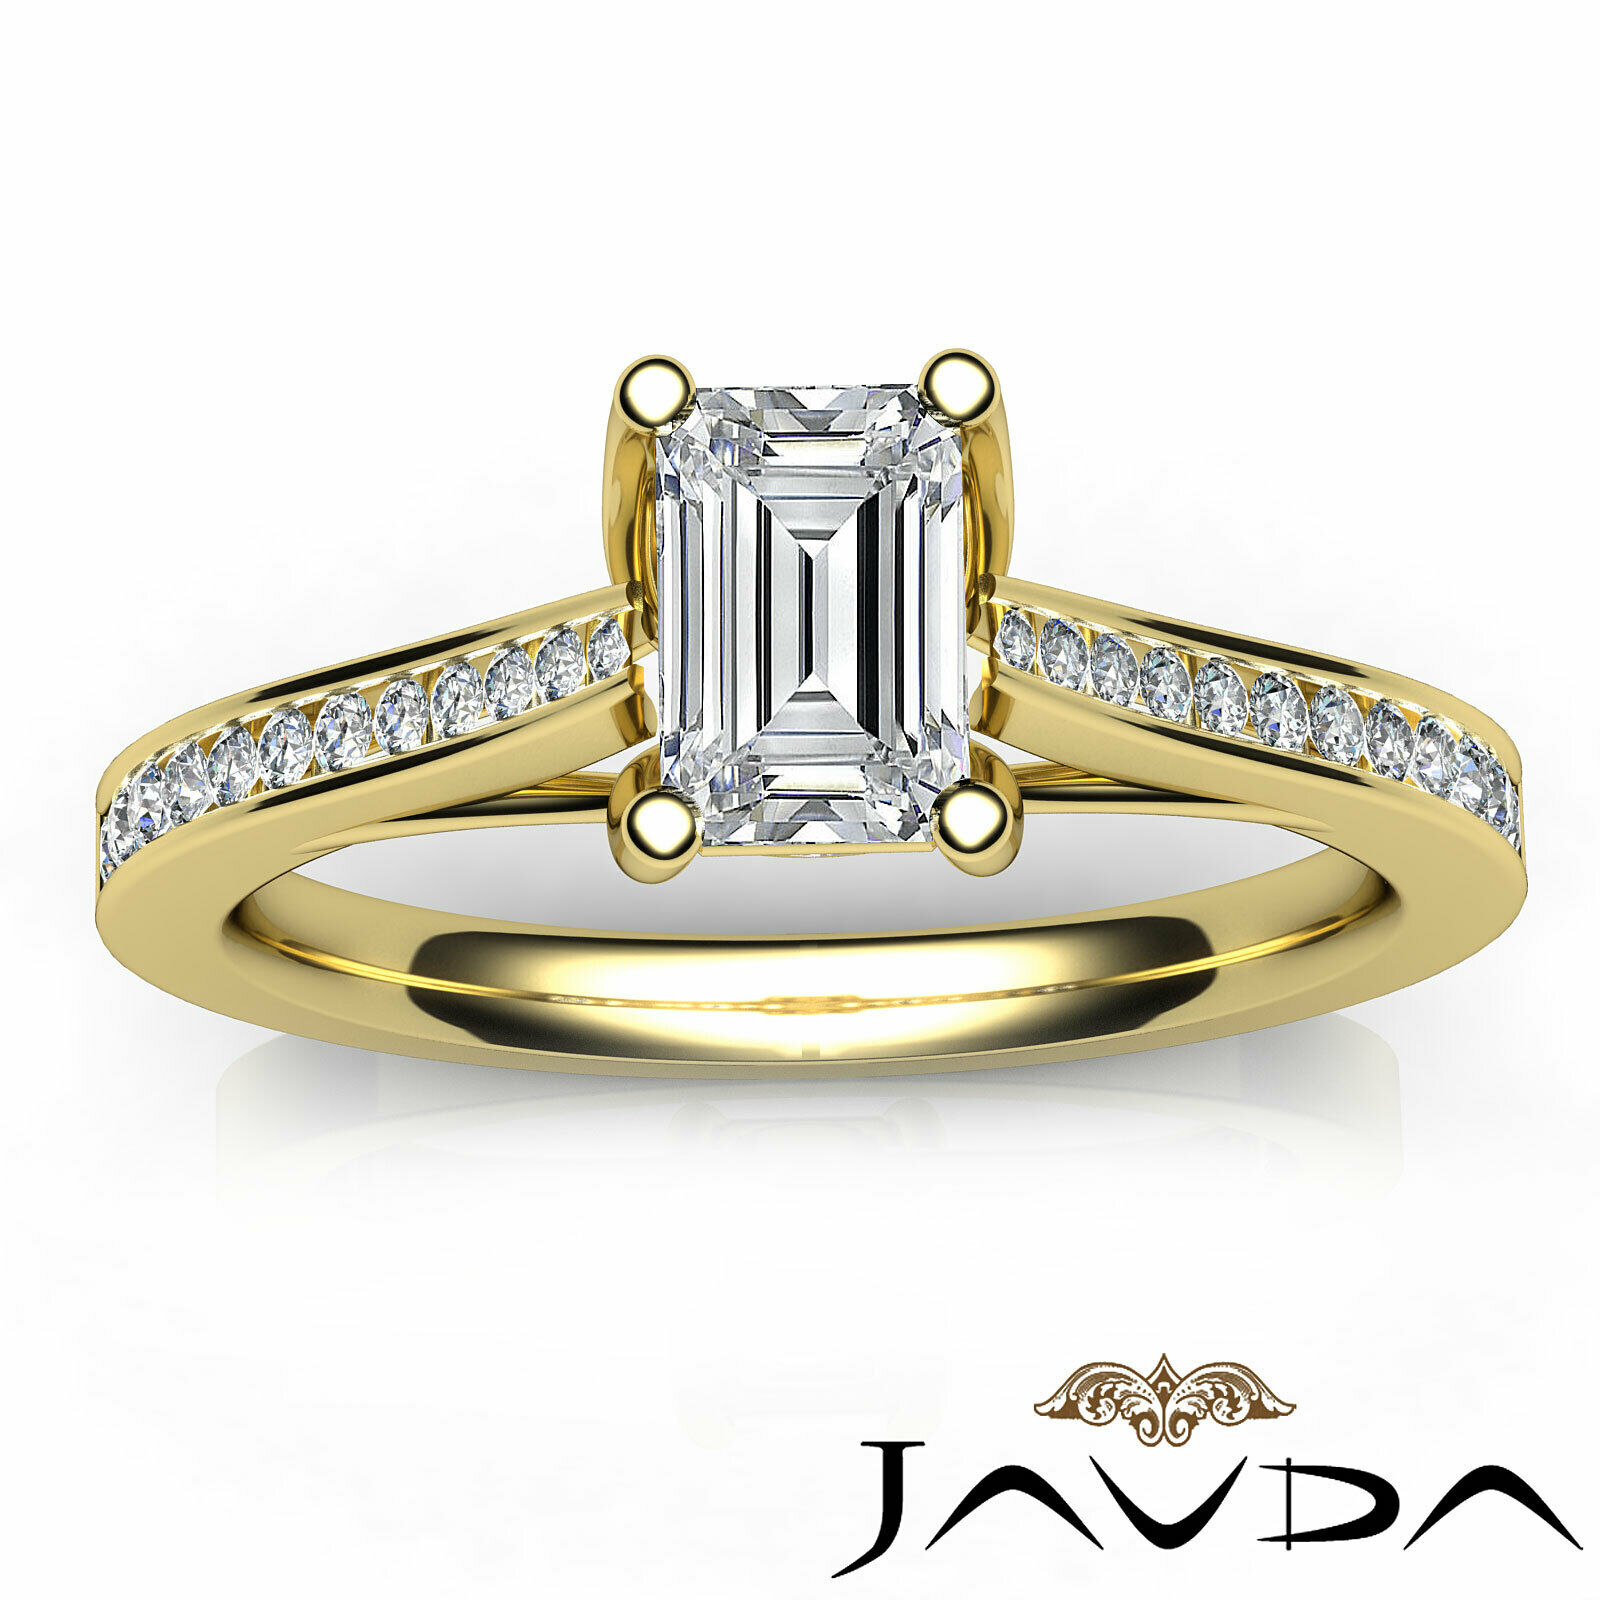 1Ctw Channel Set Emerald Diamond Engagement Her Ring Band GIA H-VVS1 White Gold 11